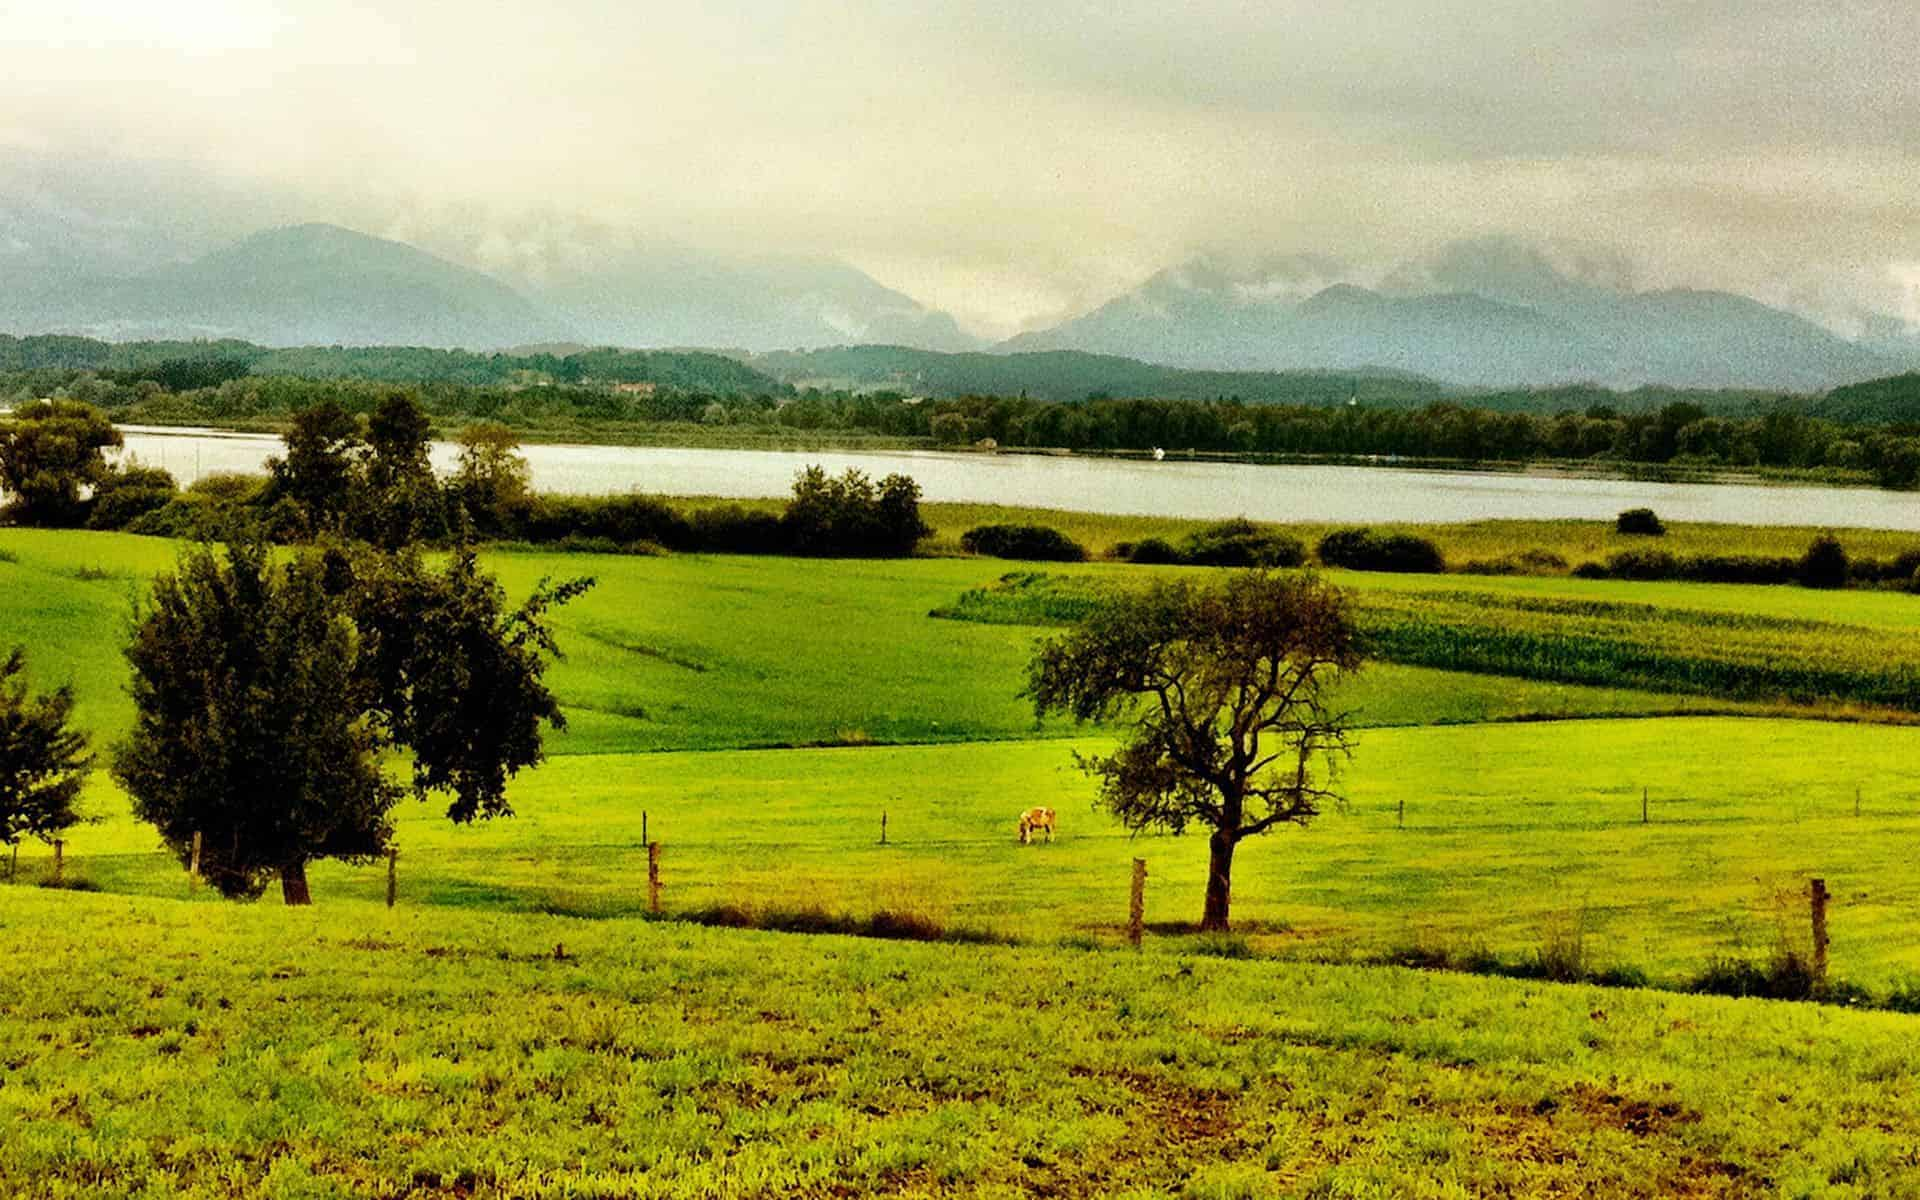 Prien am Chiemsee landscape in Germany